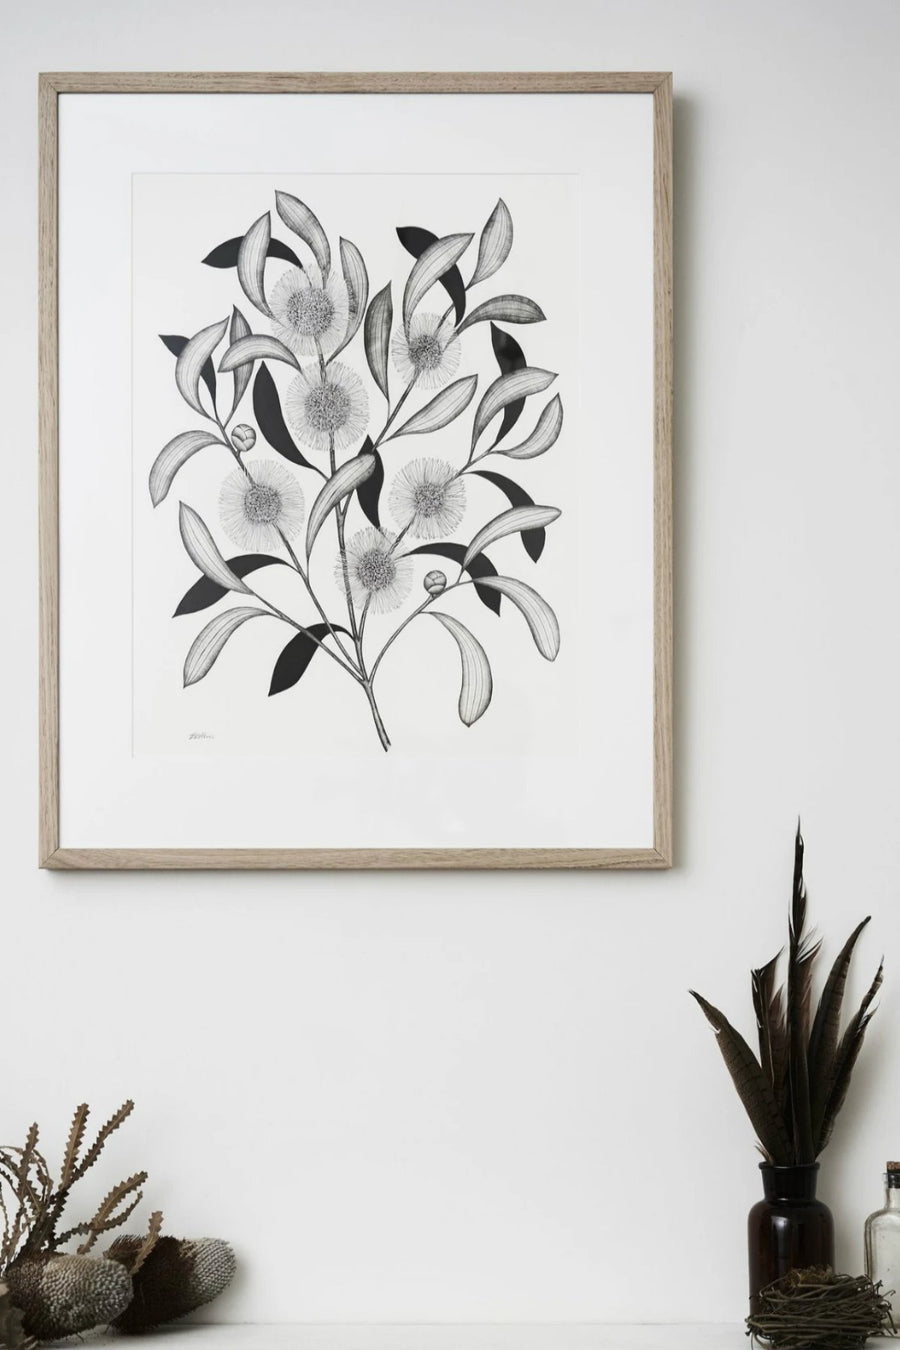 Illustration - Hakea Limited Edition - Shop Online At Mookah - mookah.com.au